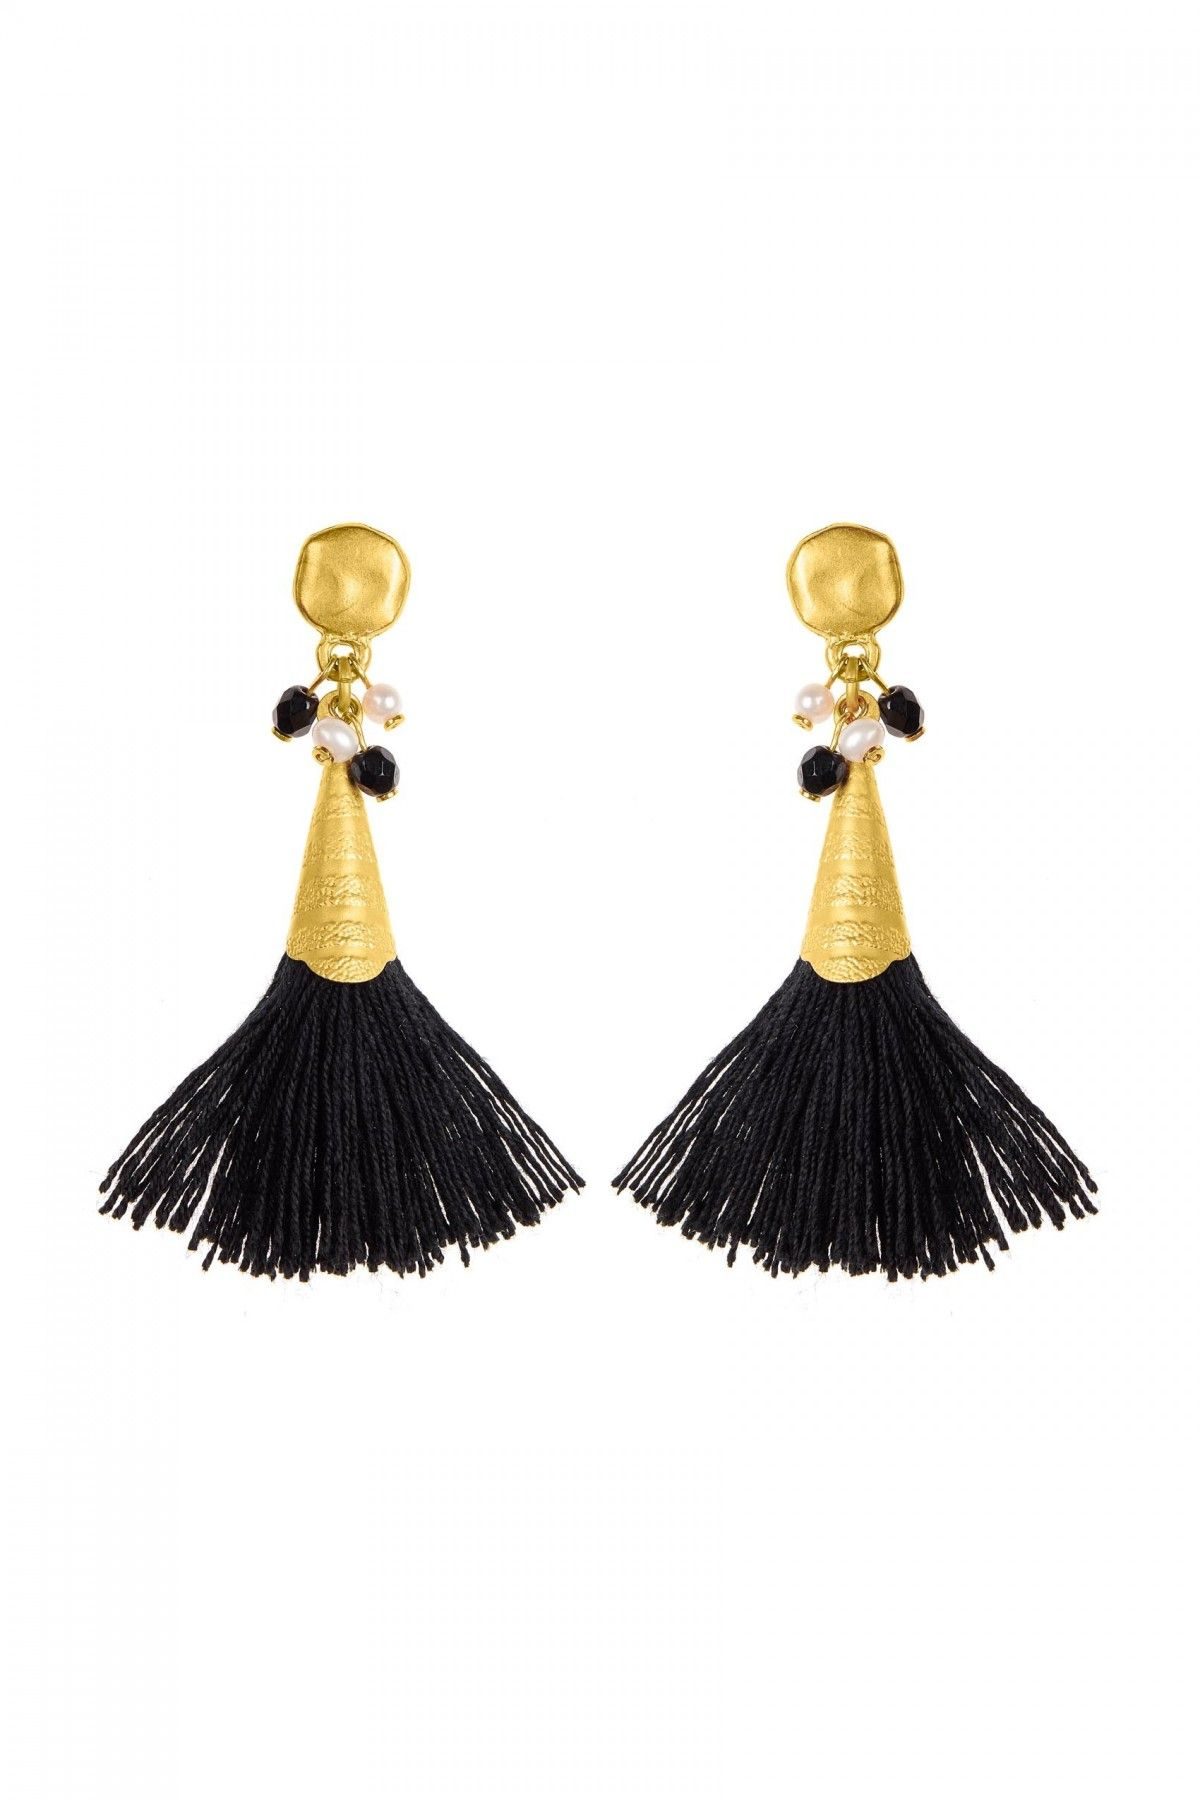 Estelle Earrings